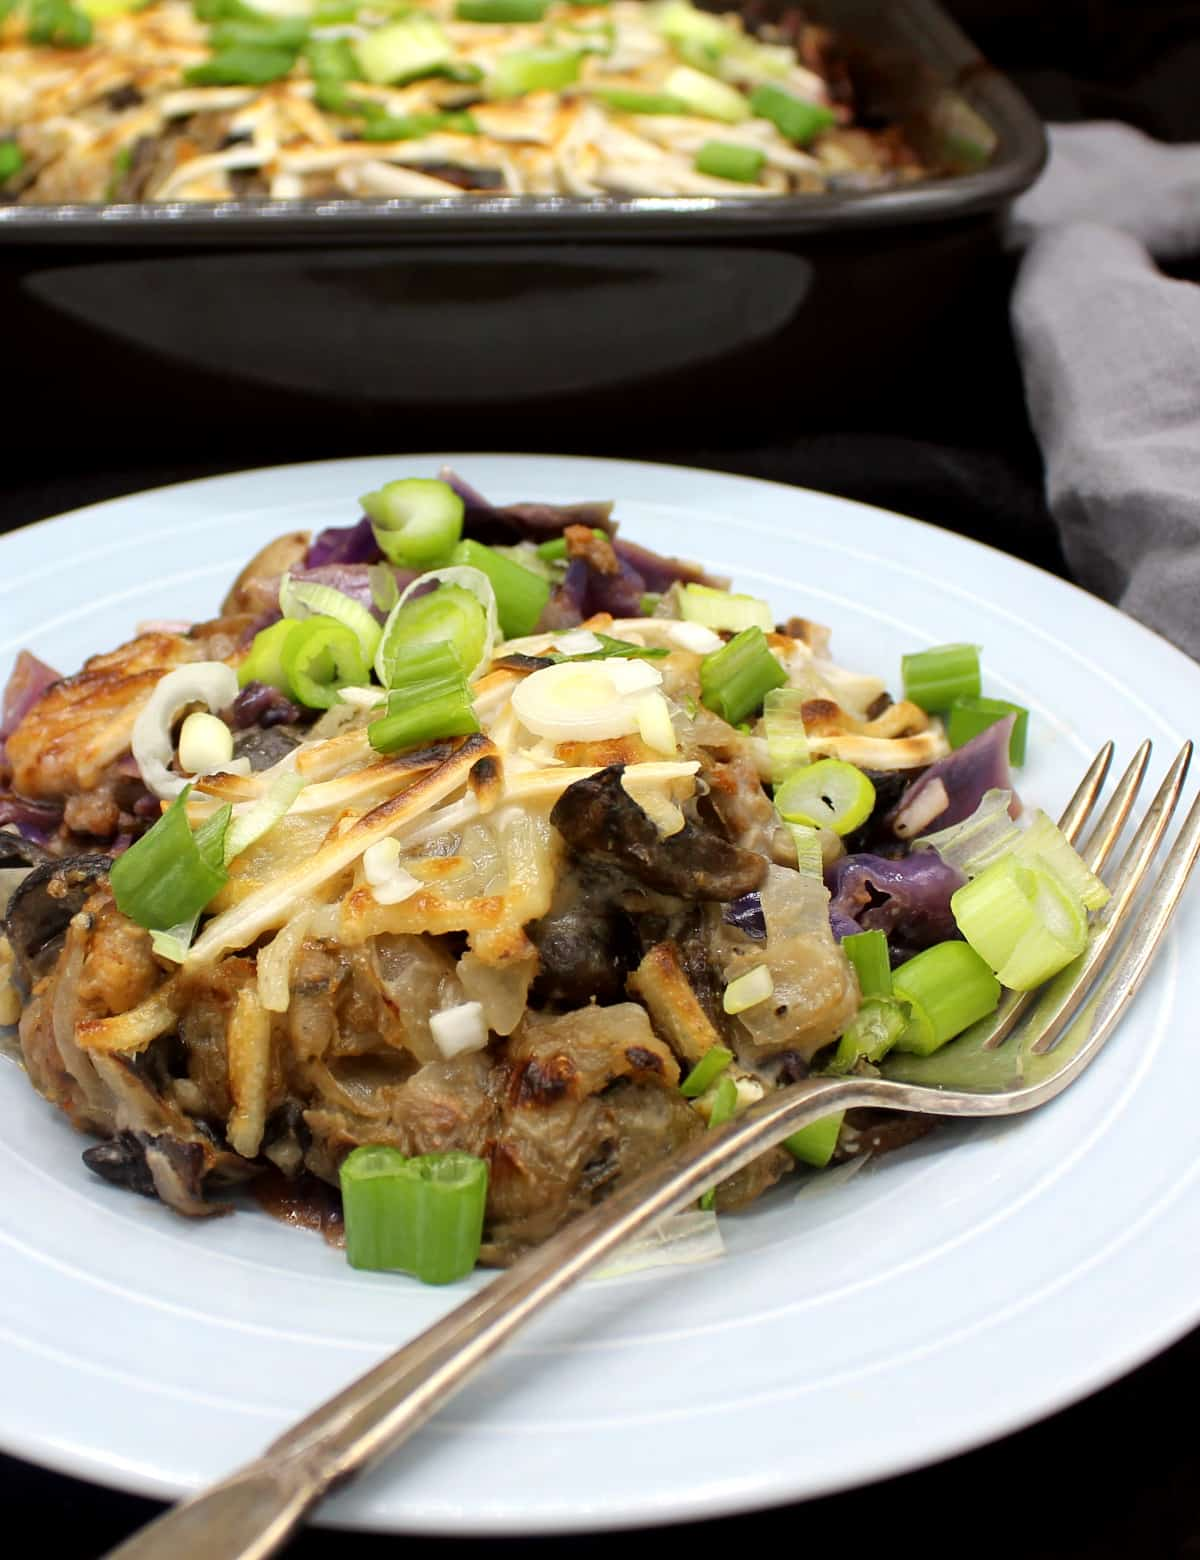 A blue gray dish with a portion of vegan cabbage casserole with meaty vegan beef crumbles, cabbage, potatoes, herbs and vegan mozzarella shreds and scallions scattered on top, with a baking dish and gray napkin in the background.